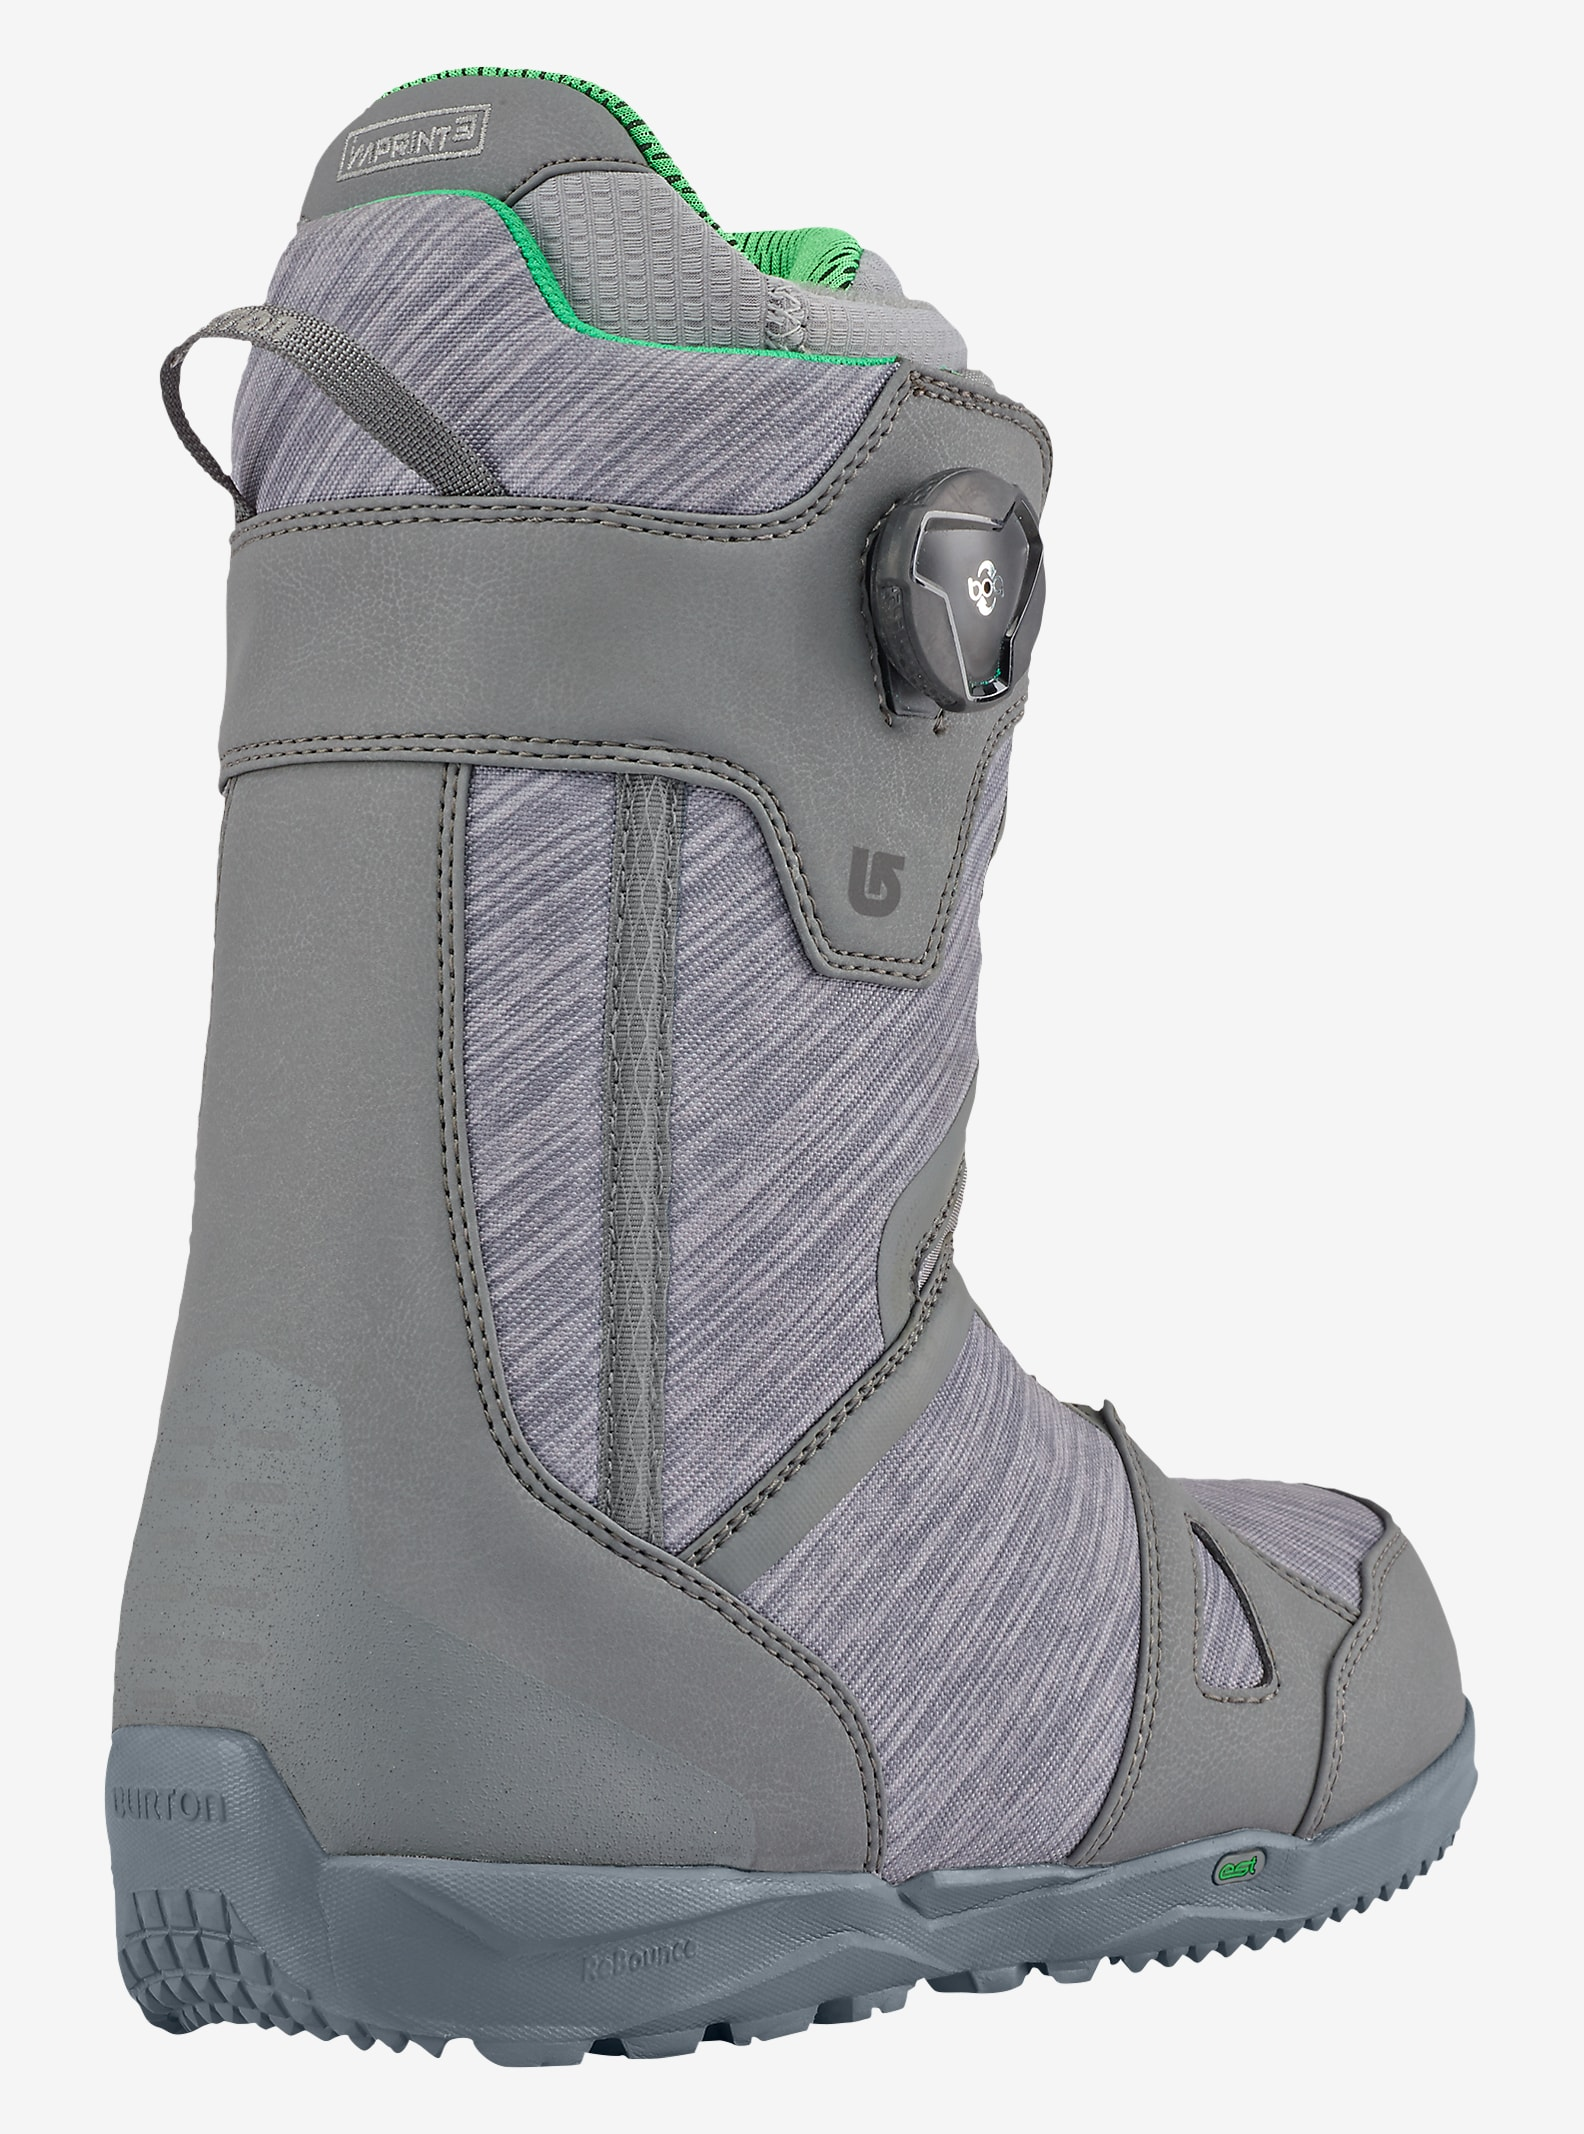 Burton Concord Boa® Snowboard Boot shown in Gray / Green